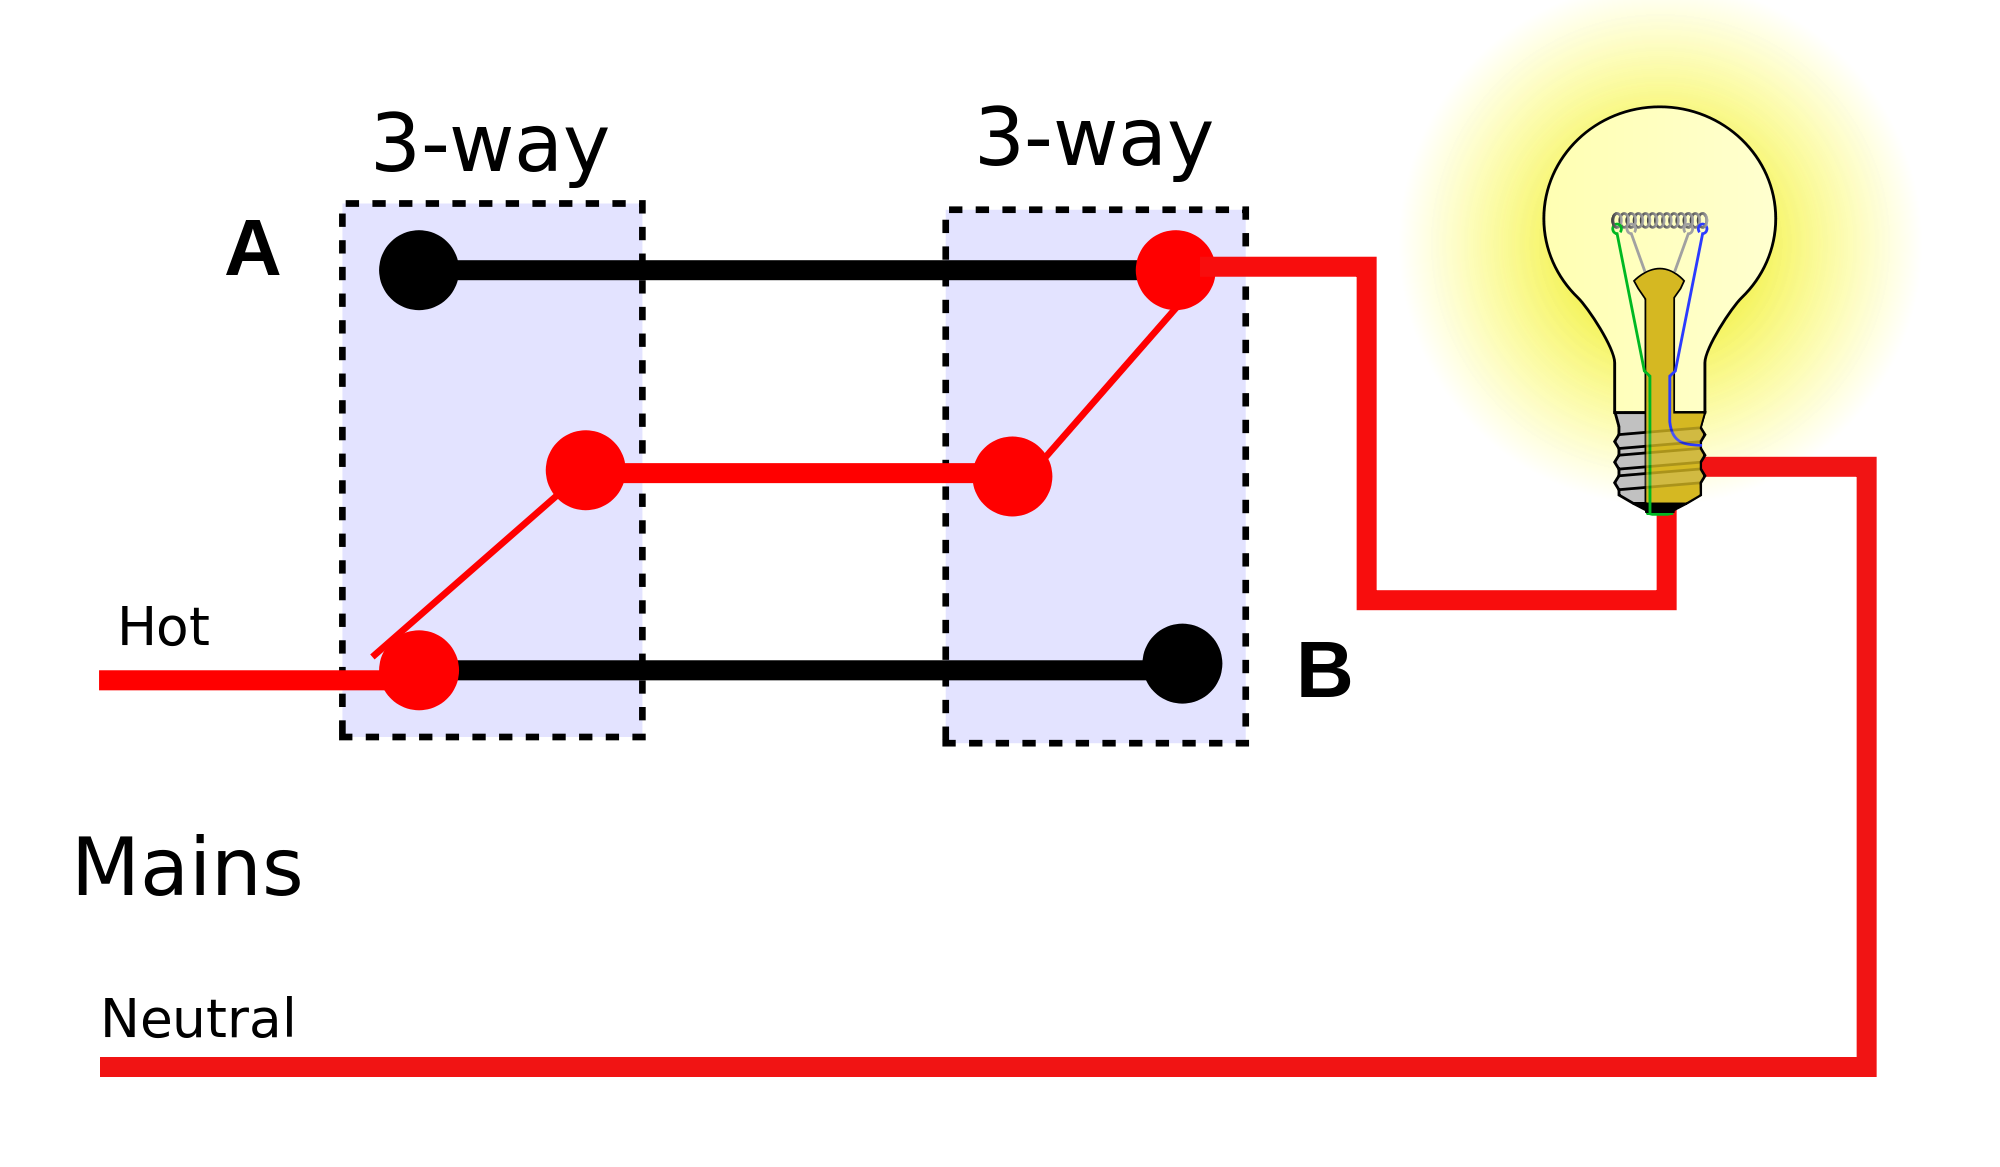 Blank Basic Light Switch Wiring Diagrams - Today Diagram Database on